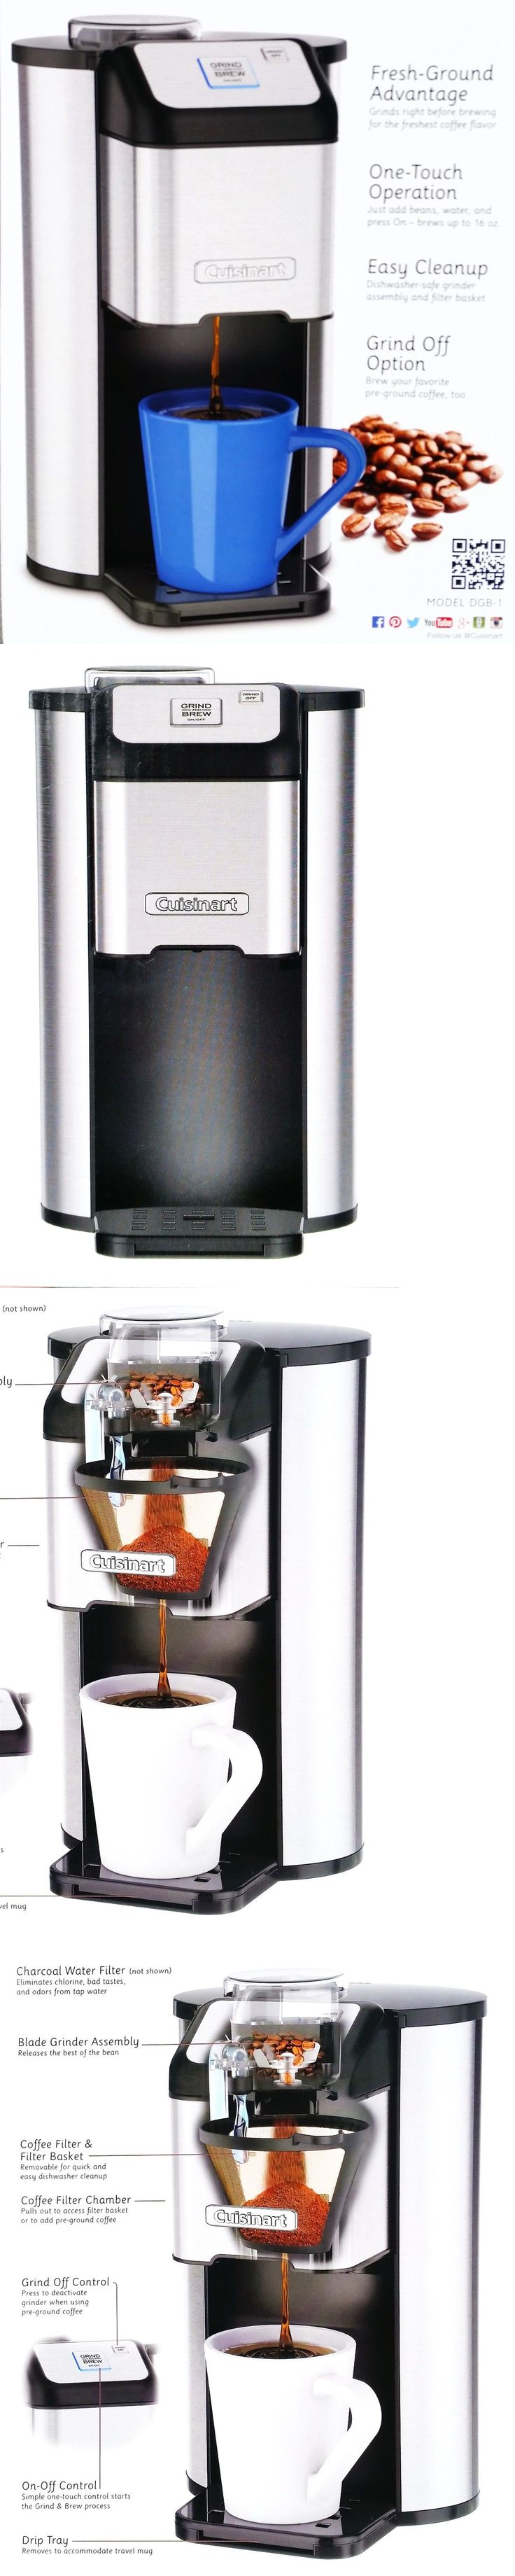 appliances: Cuisinart Grind And Brew Single Serve Coffee Maker 1 Cup Coffeemaker With Grinder -> BUY IT NOW ONLY: $59.89 on eBay!